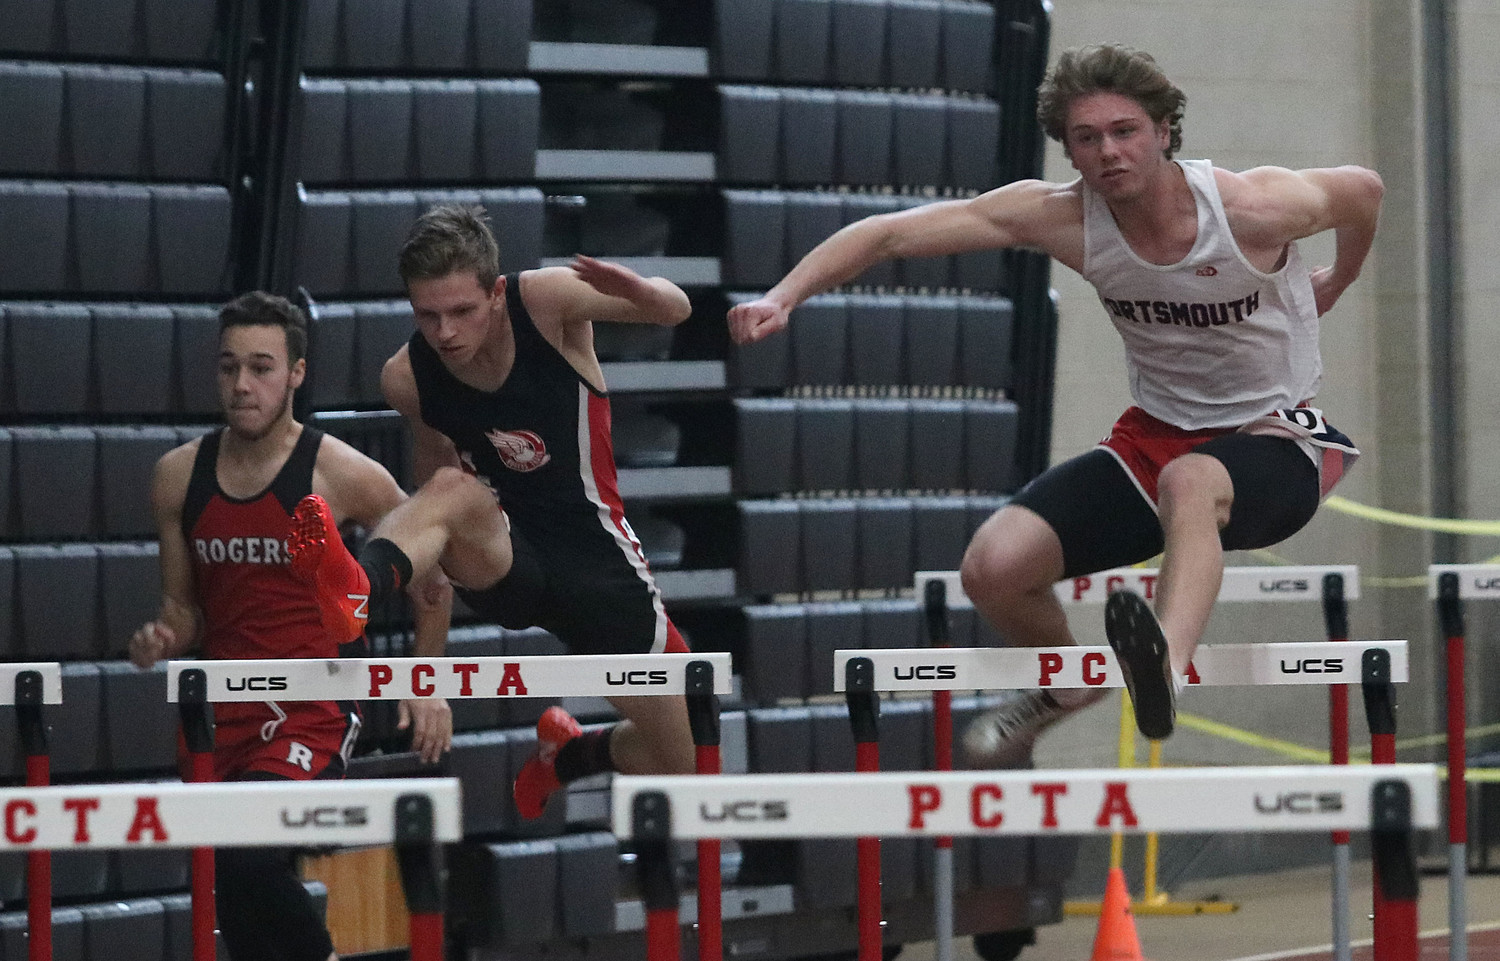 Martin Lasky leaps over a hurdle in the 55-meter hurdles.